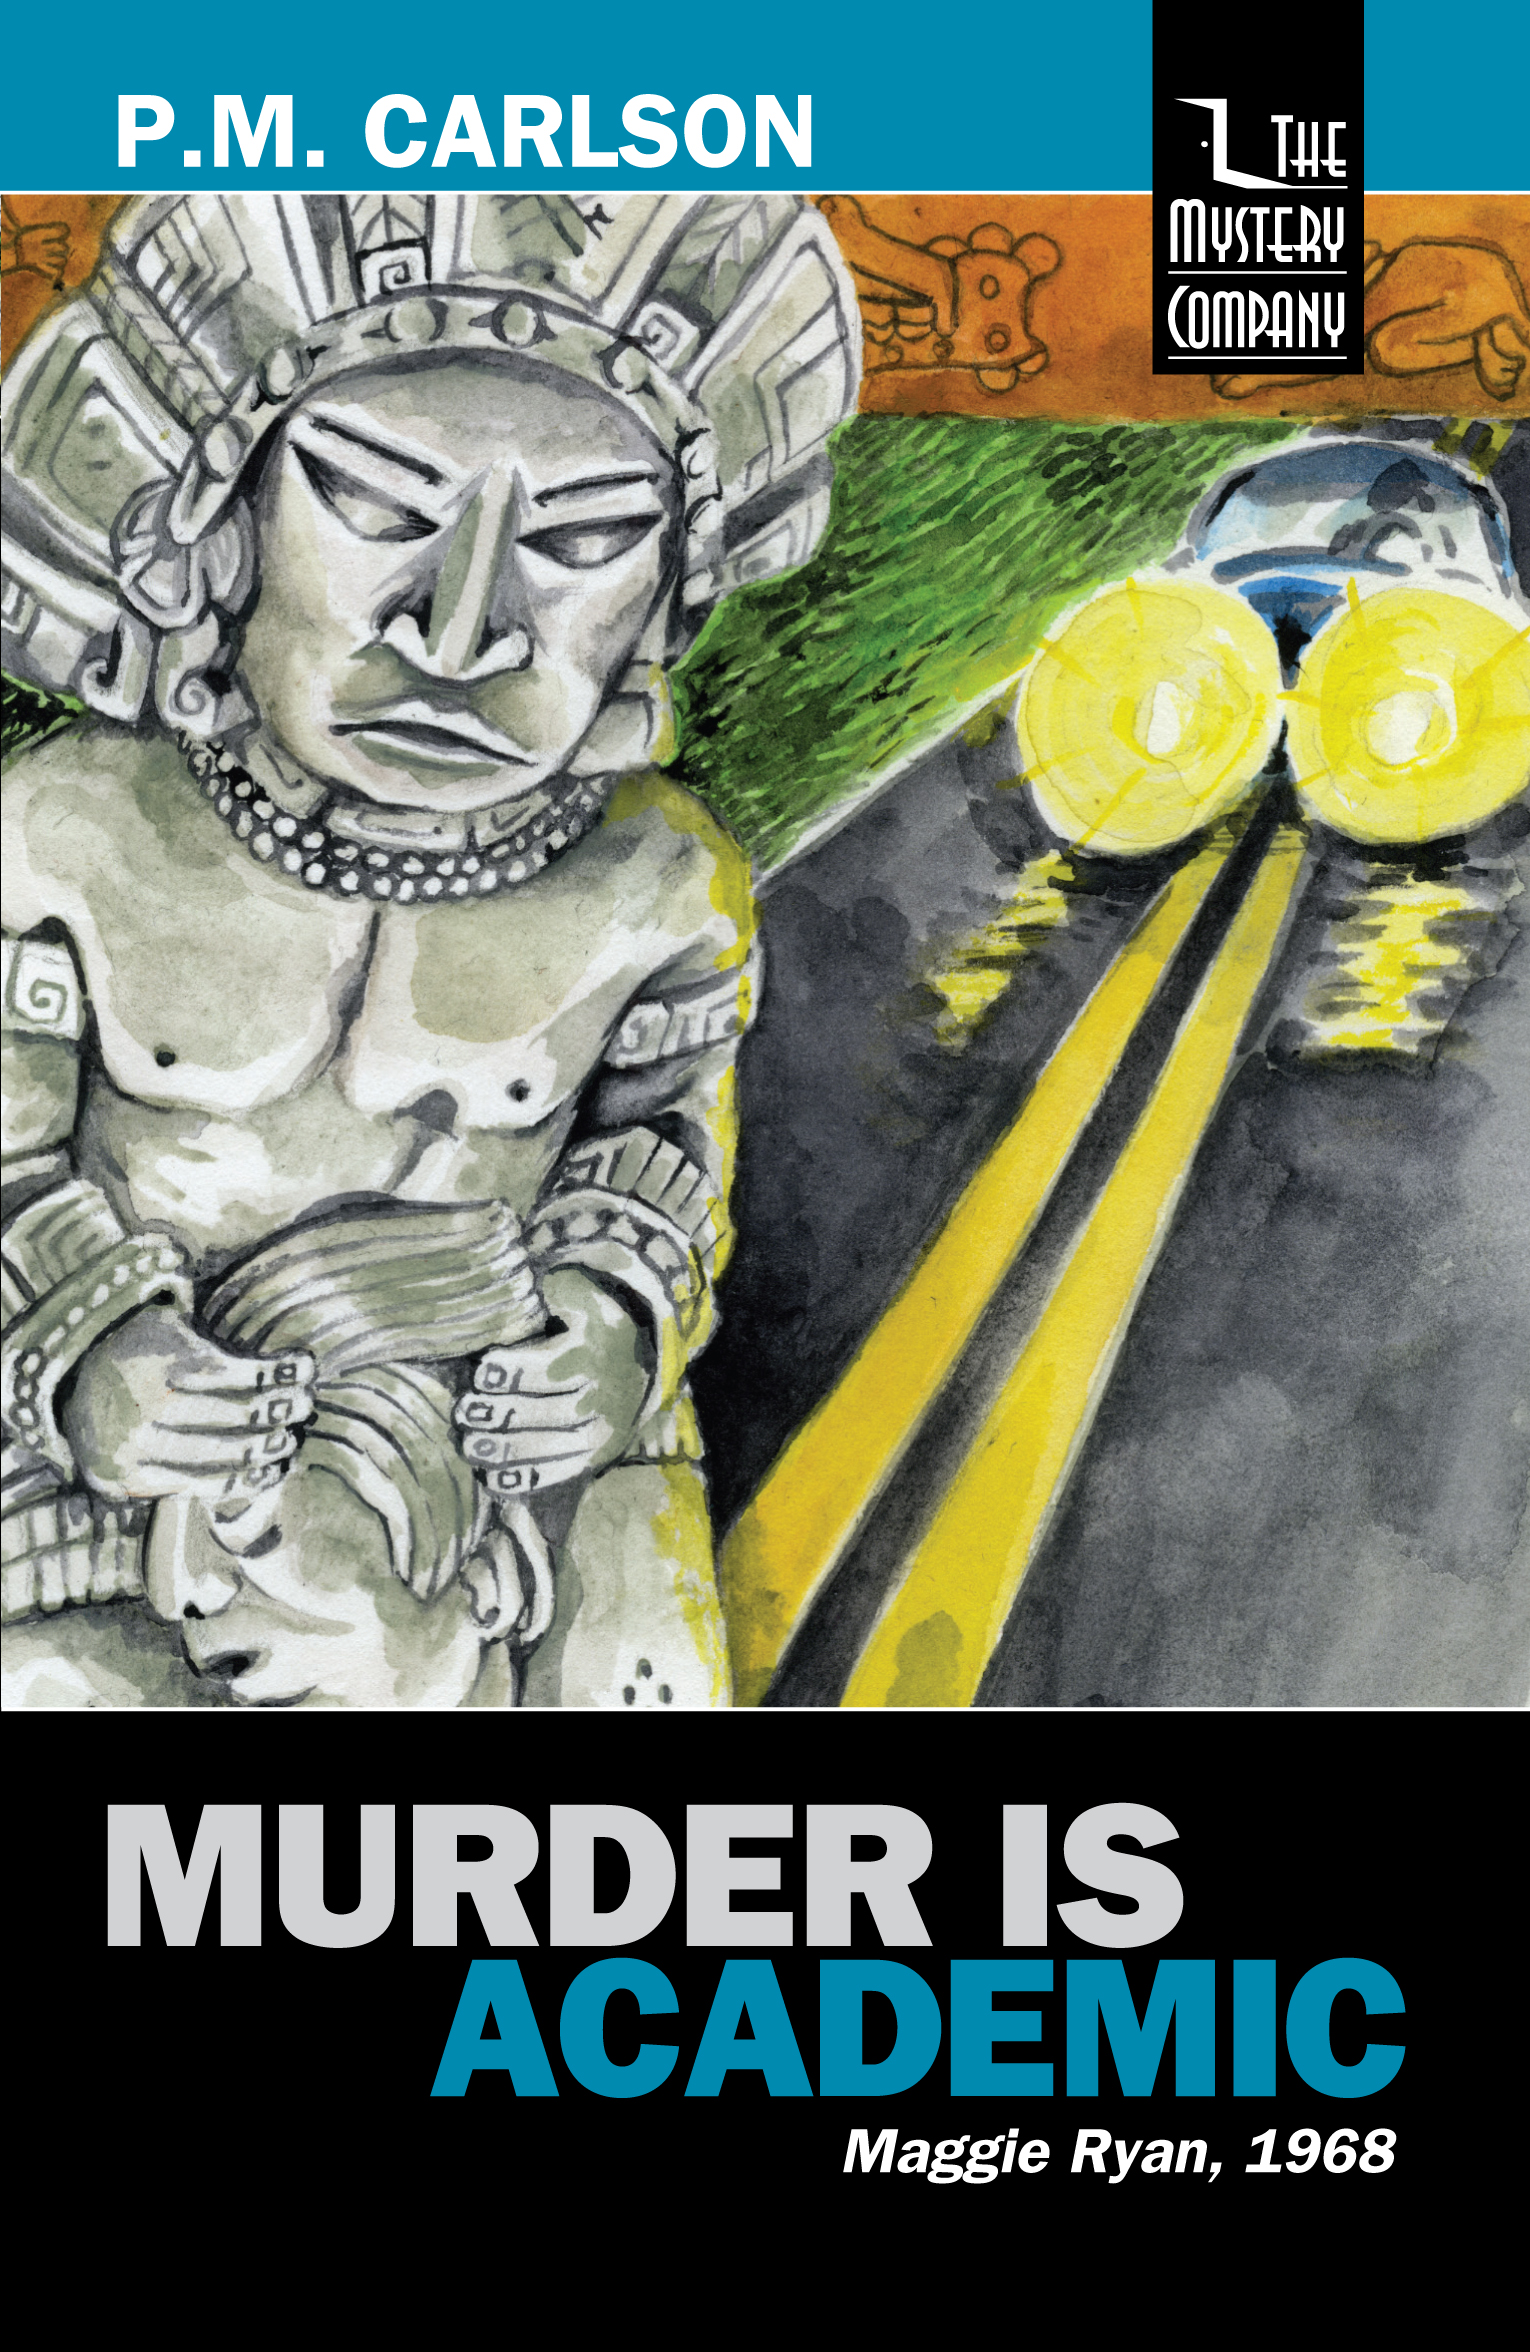 Murder Is Academic by P.M. Carlson